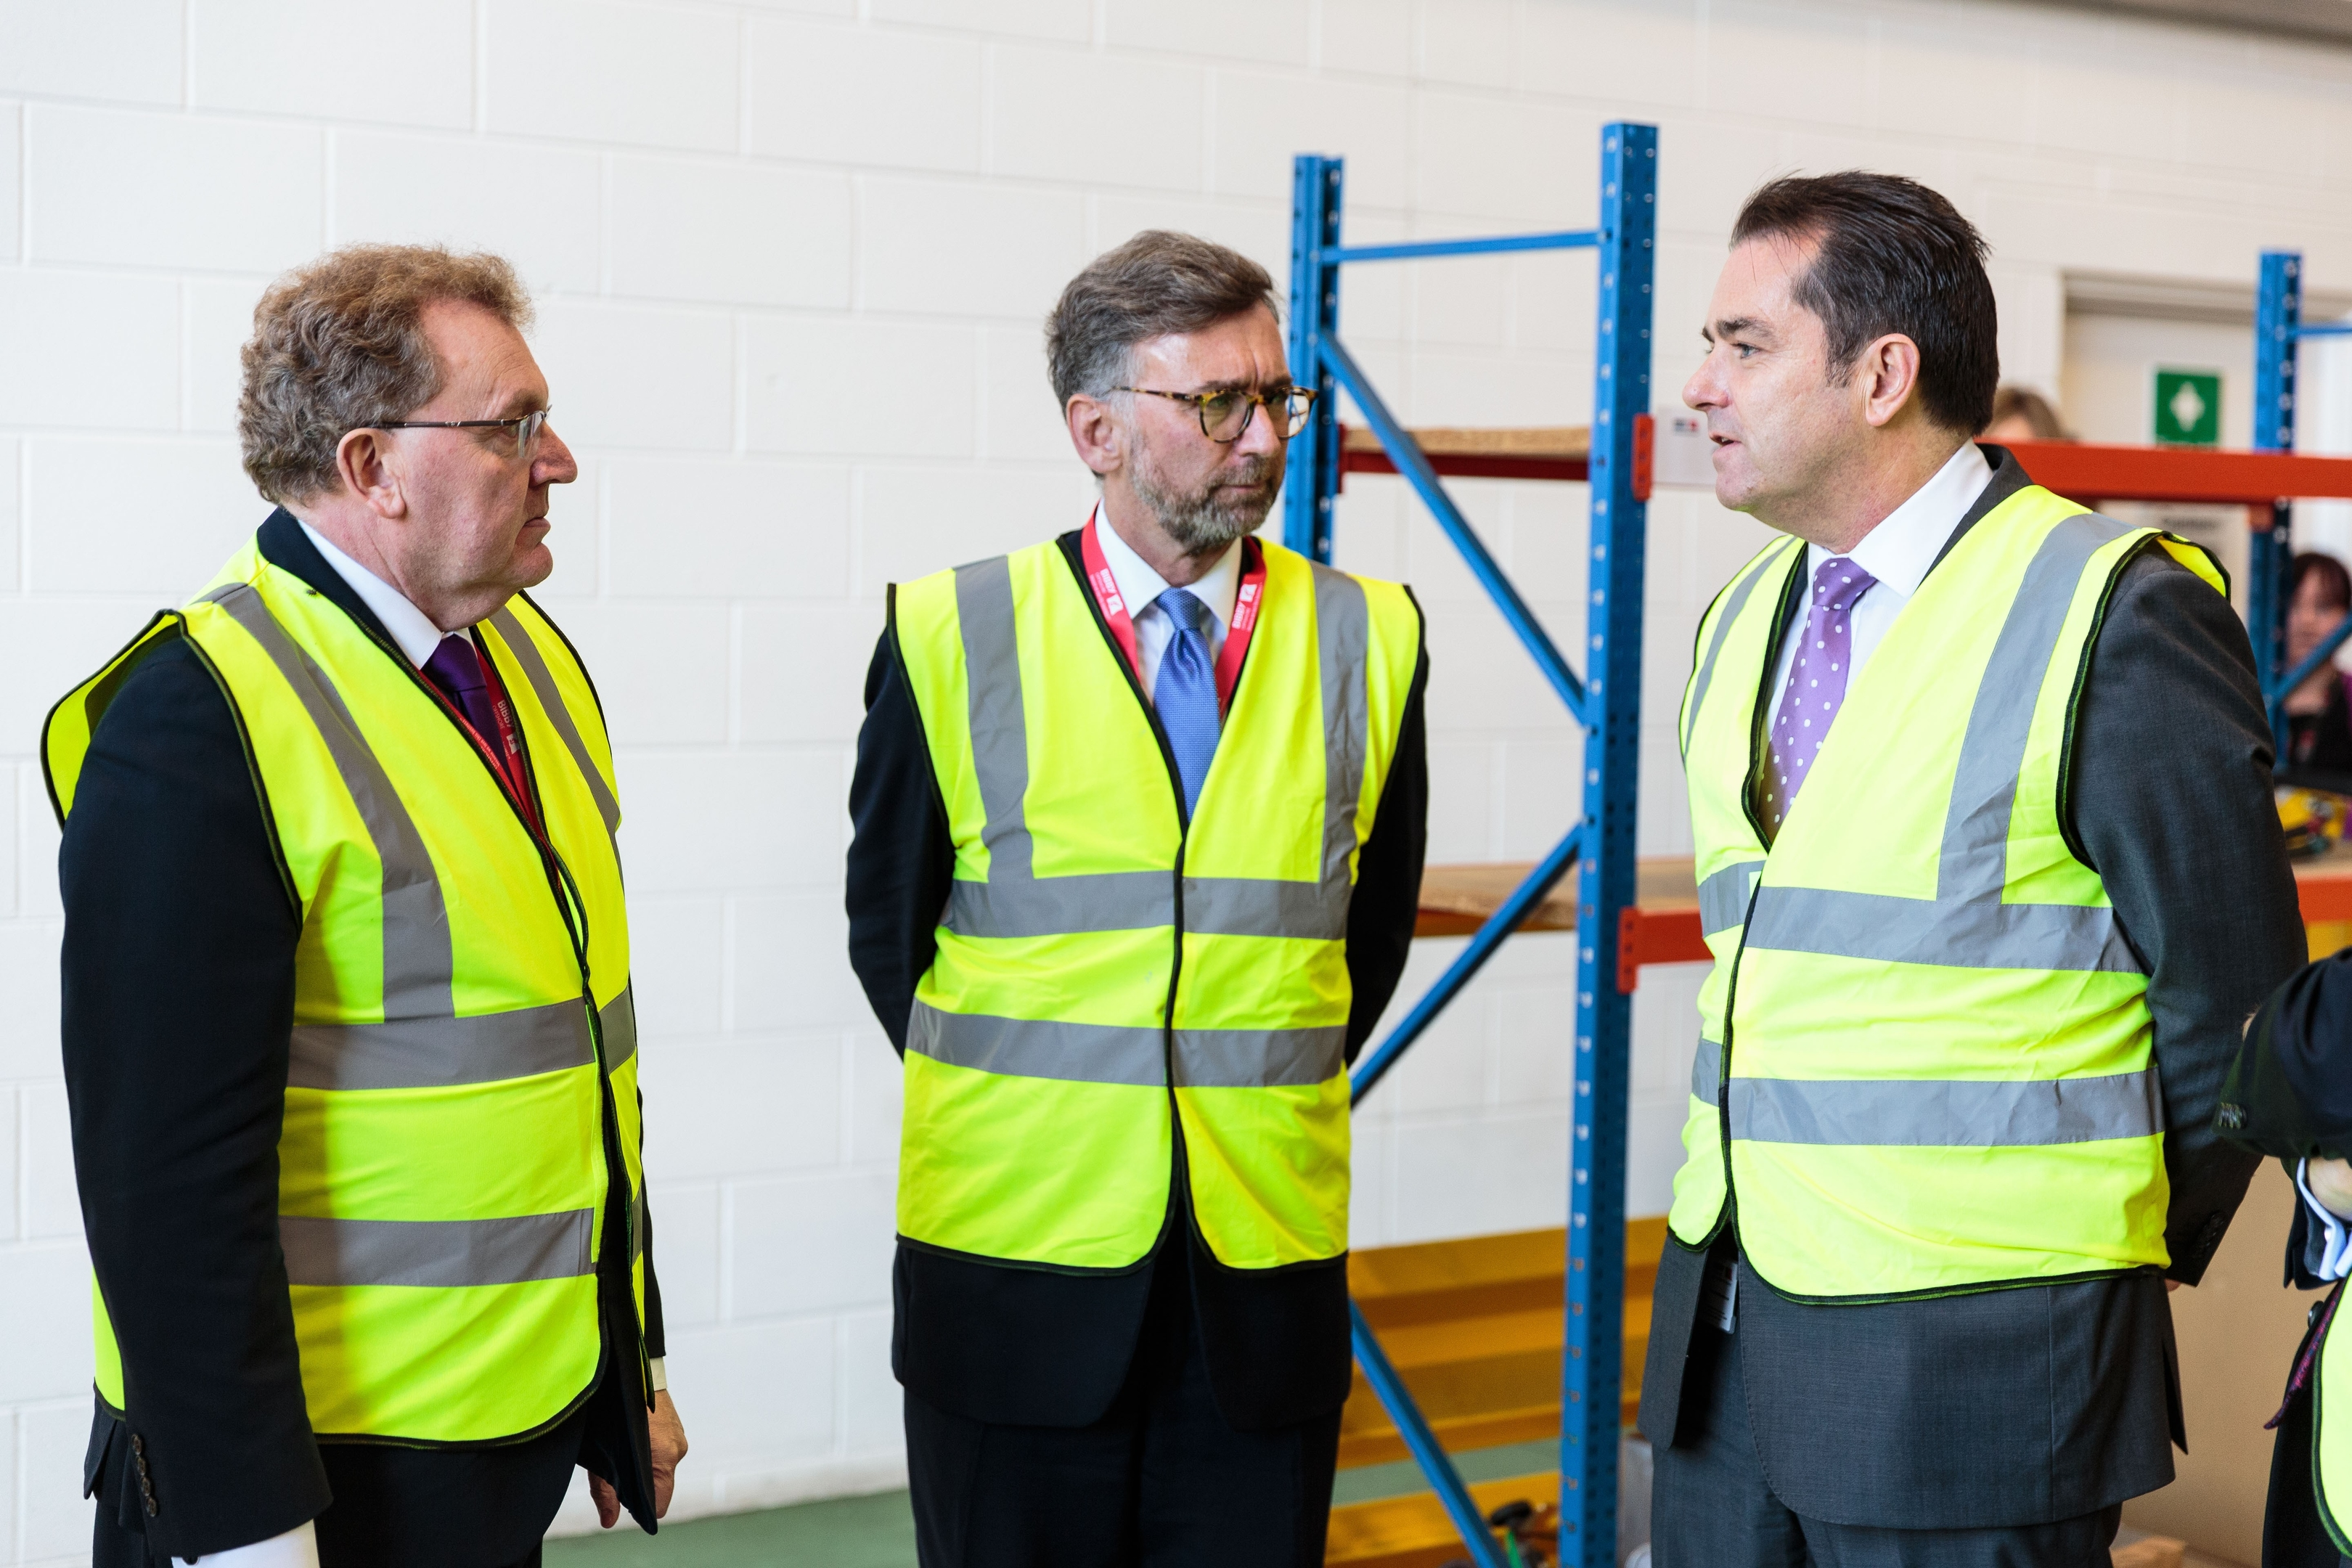 David Mundell, Secretary of State for Scotland, Lord Andrew Dunlop, Under Secretary of State at the Scotland and Howard Woodcock Chief Executive Bibby Offshore